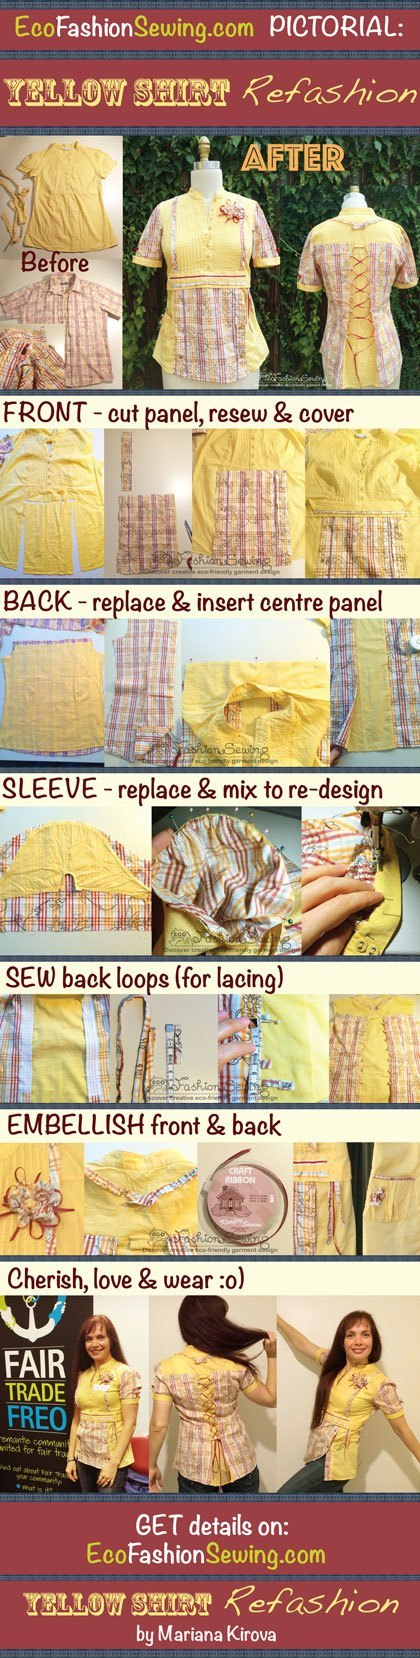 Yellow-shirt-refashion---PICTORIAL